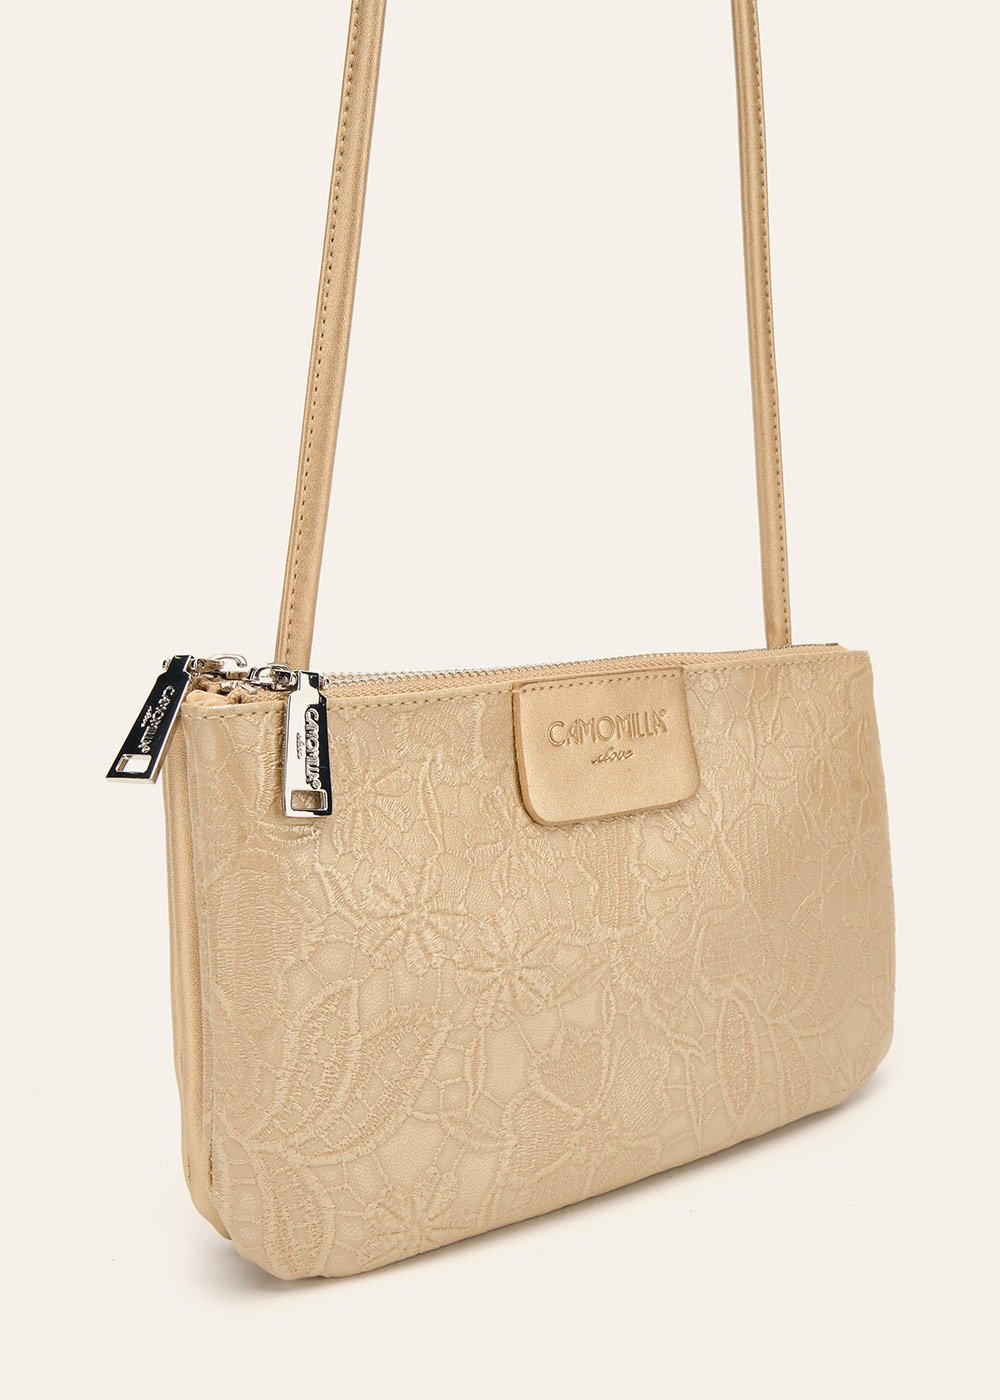 Tonga floral print clutch bag with shoulder strap - Gold - Woman